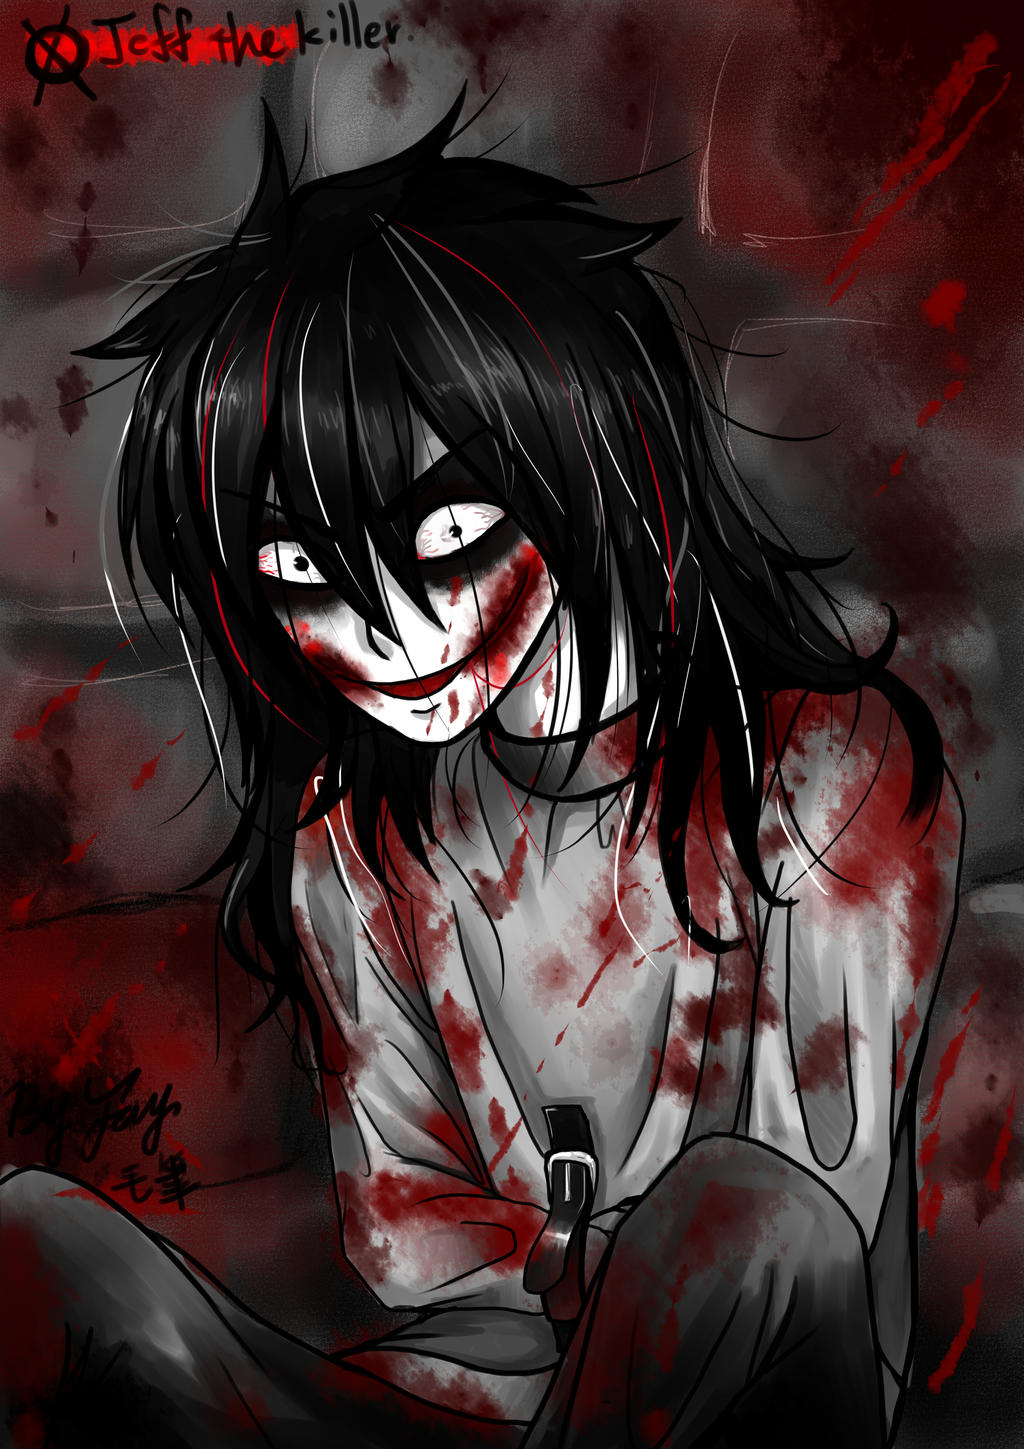 Jeff the killer by JinfanFay